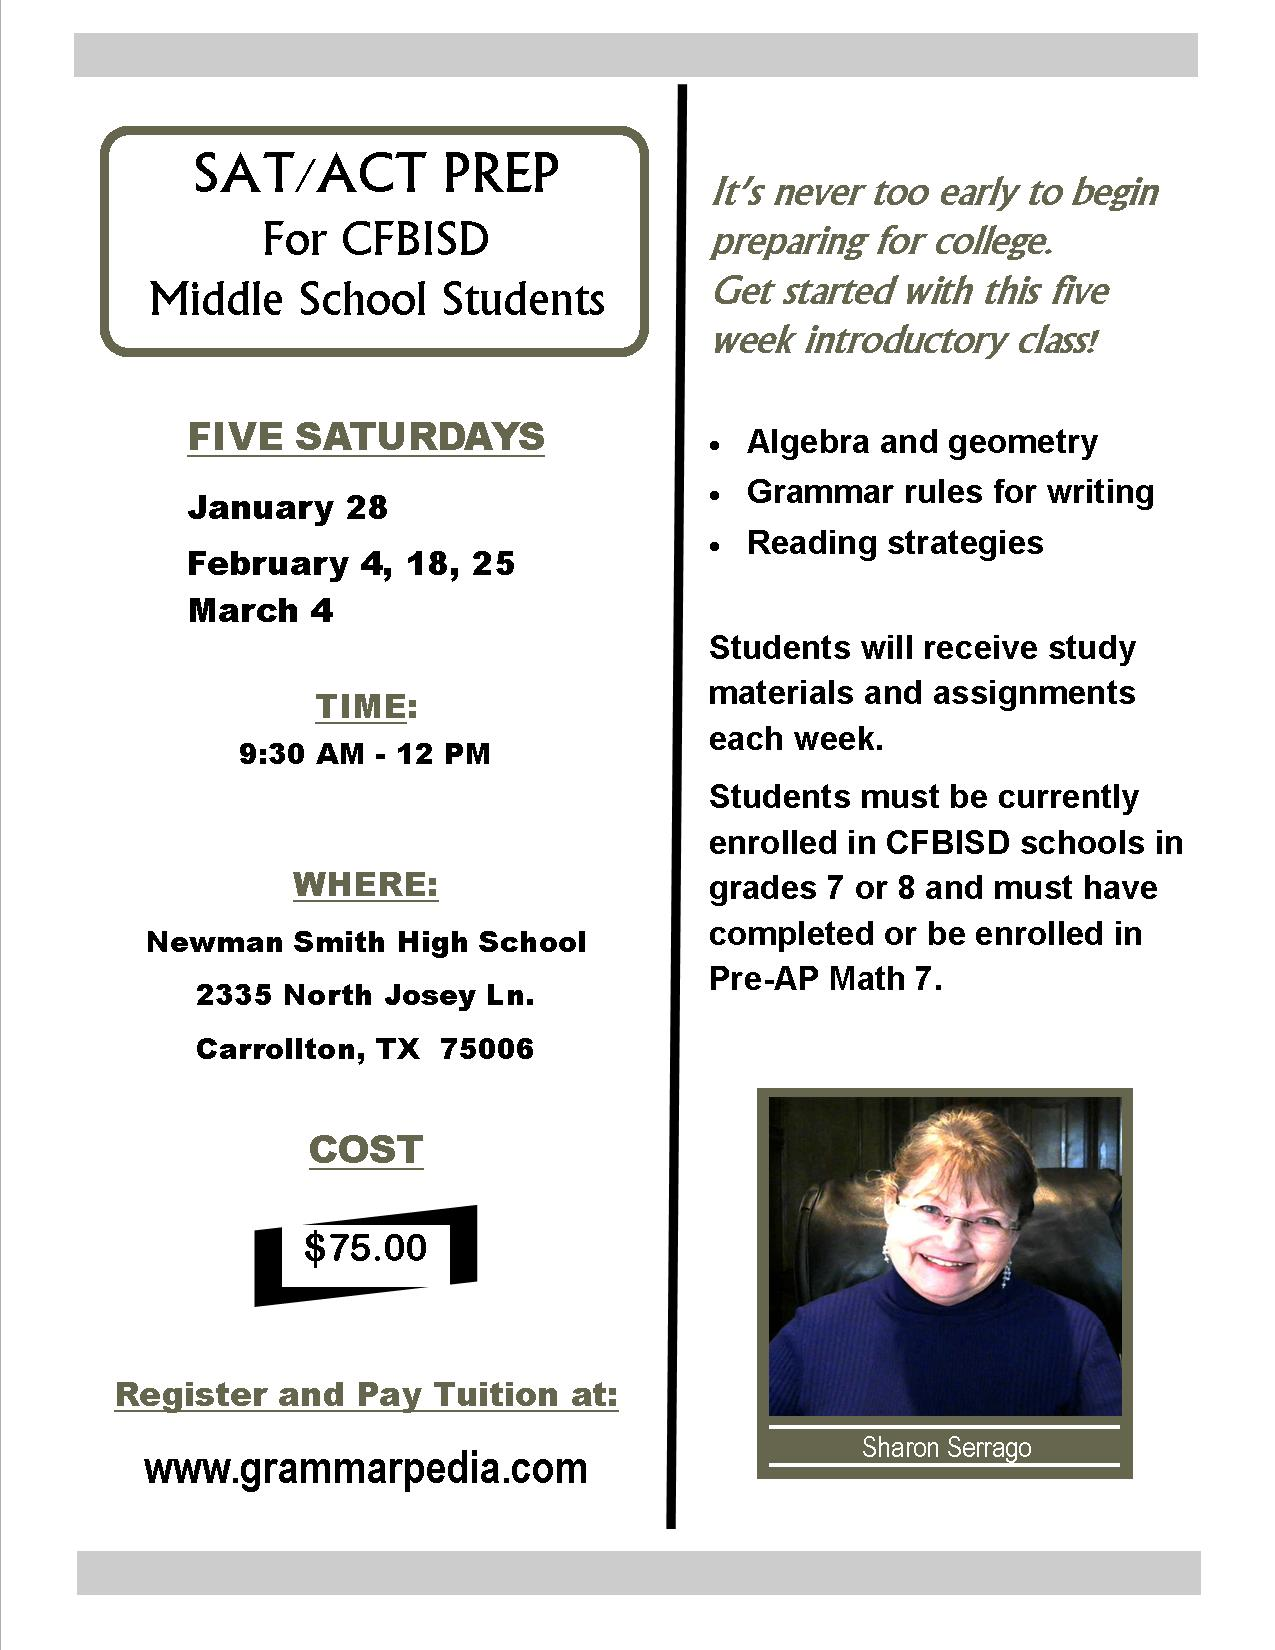 FIVE SATURDAYS          January 28           February 4, 18, 25           March 4  TIME:  9:30 AM - 12 PM    WHERE: Newman Smith High School  2335 North Josey Ln. Carrollton, TX  75006  COST      Register and Pay Tuition at:  www.grammarpedia.com